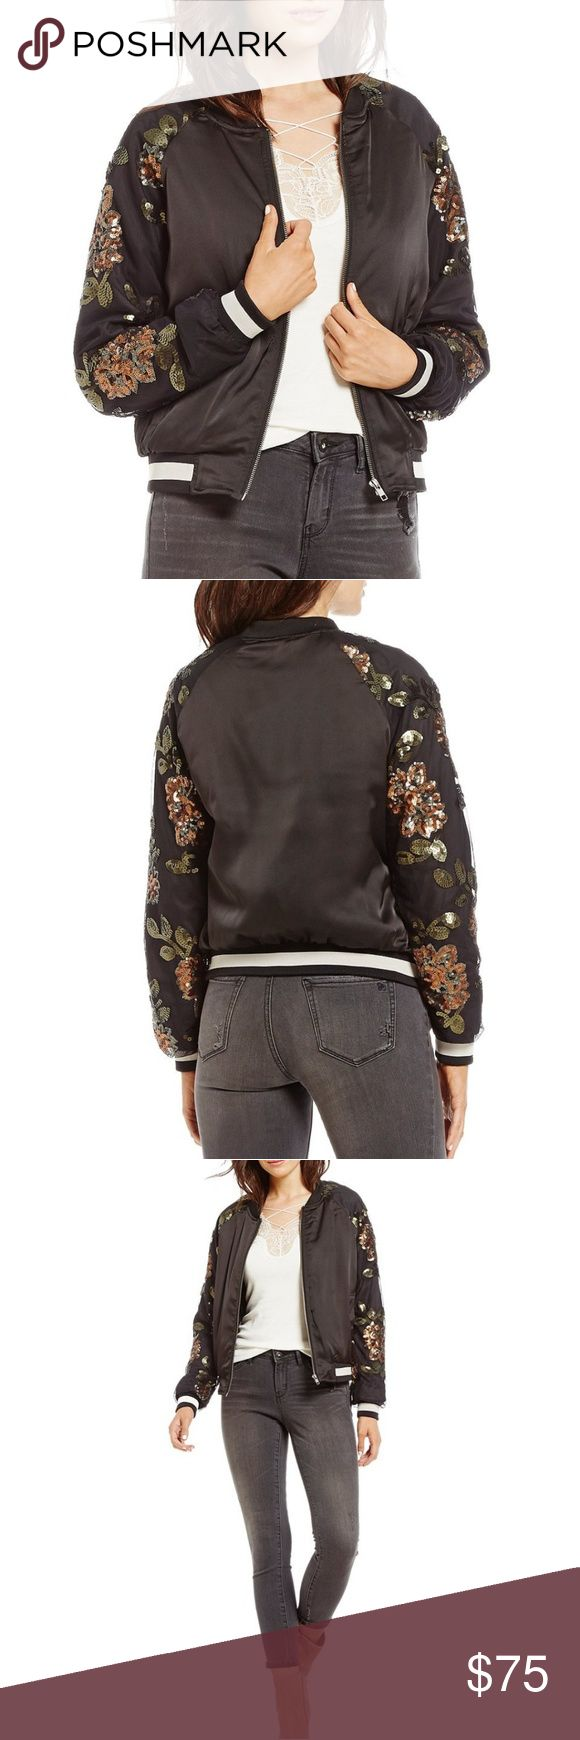 Jessica Simpson Tabby Floral Lace Bomber Jacket Jessica Simpson Tabby Floral Embellished Lace Bomber Jacket  Brand New! With tags!  Color: Black  Size: XL  Retails: $129.50 ** NWT  Made From: 100% Polyester Jessica Simpson Jackets & Coats